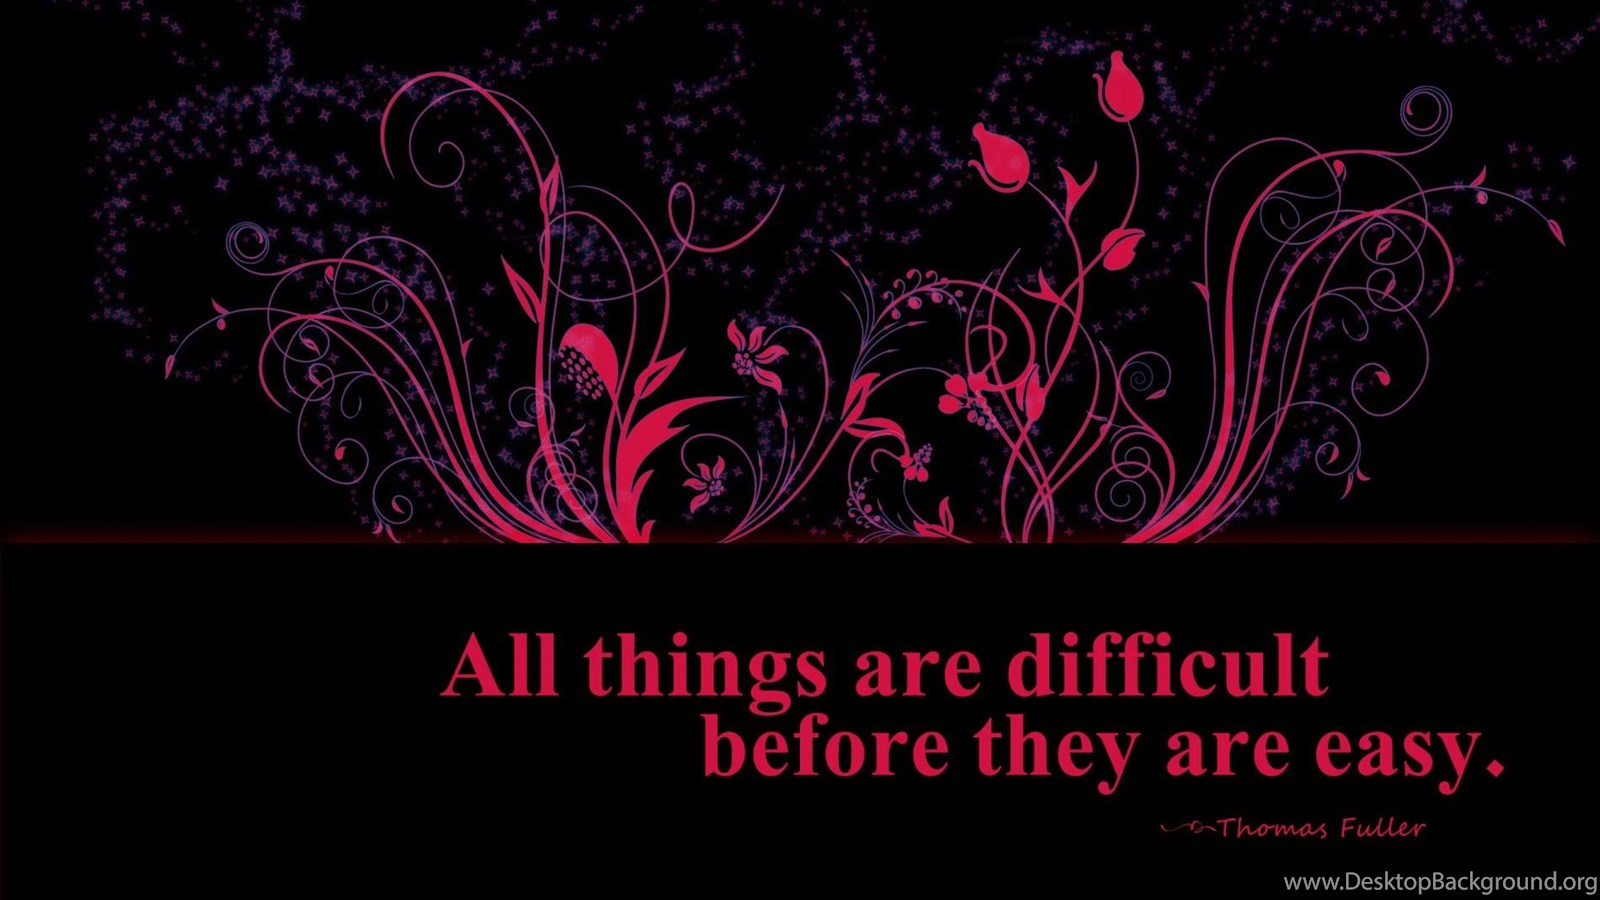 inspiring quotes wallpaper images photos a to z wallpapers desktop